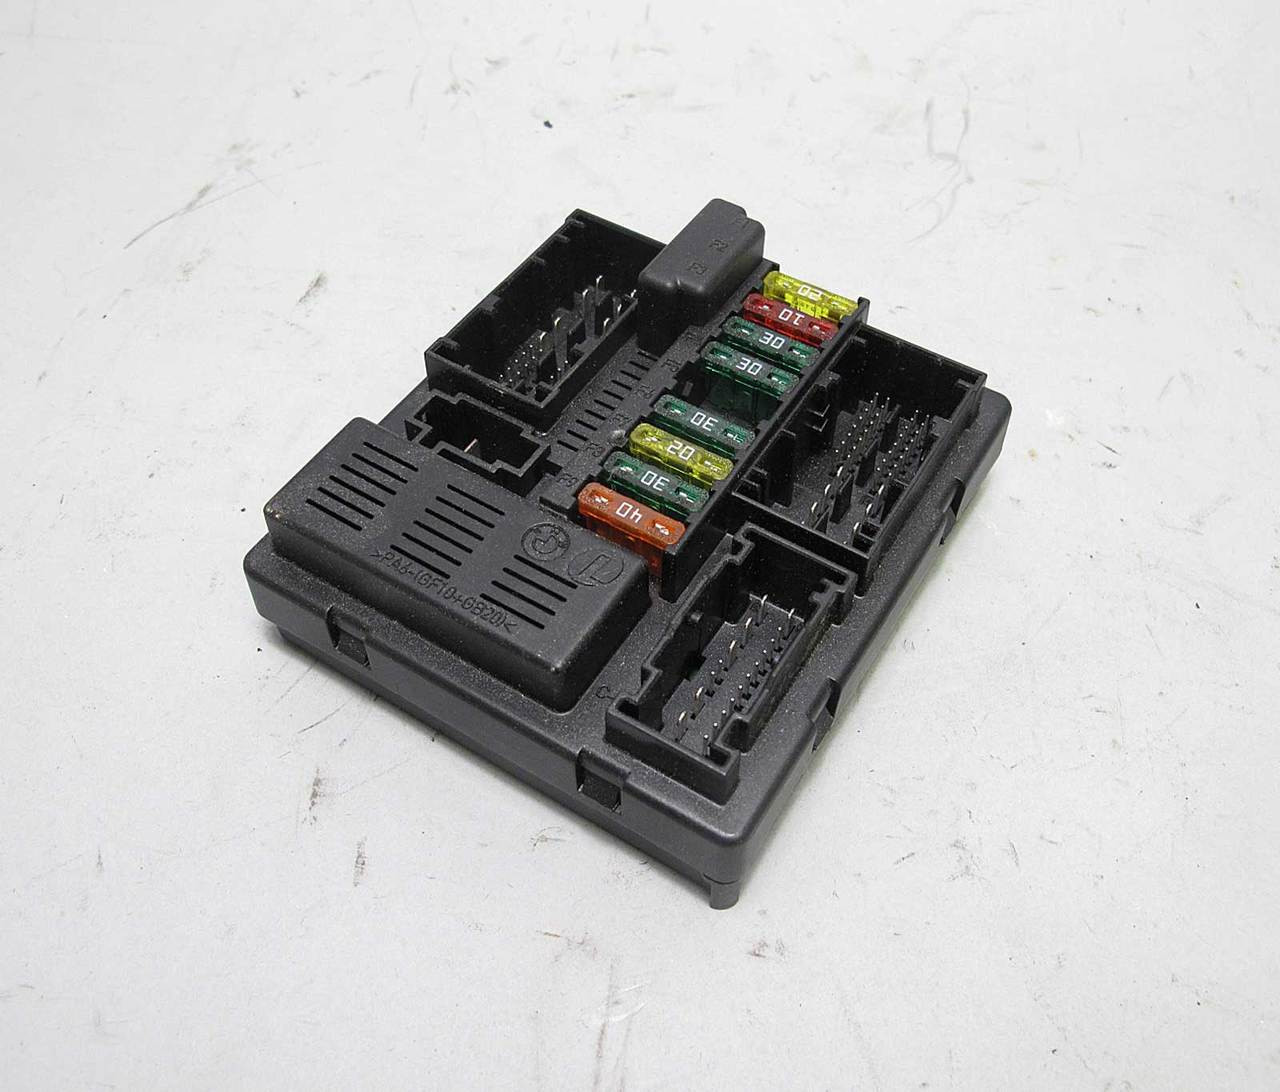 medium resolution of bmw z4 x3 3 0i under hood fuse box electrical distribution module rh prussianmotors com